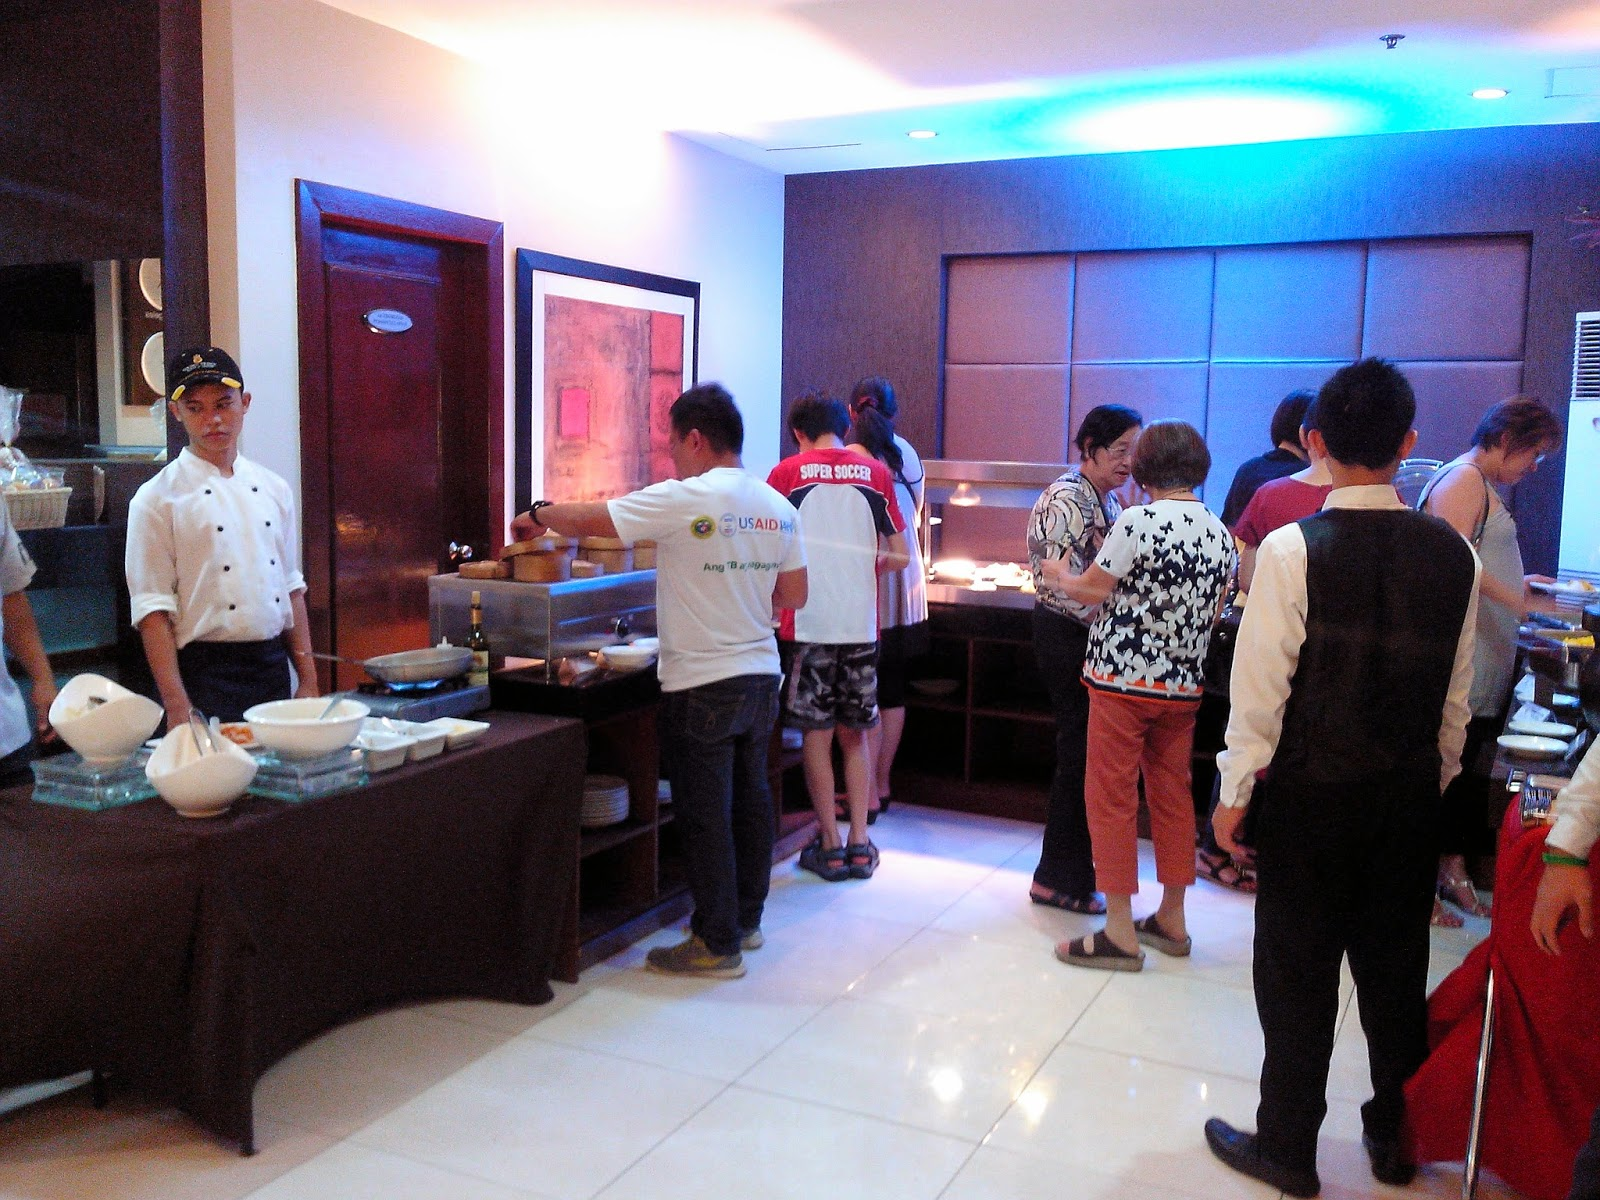 Eat All You Can Dinner is available every Friday from 6:30PM - 10PM at Golden Prince Hotel.